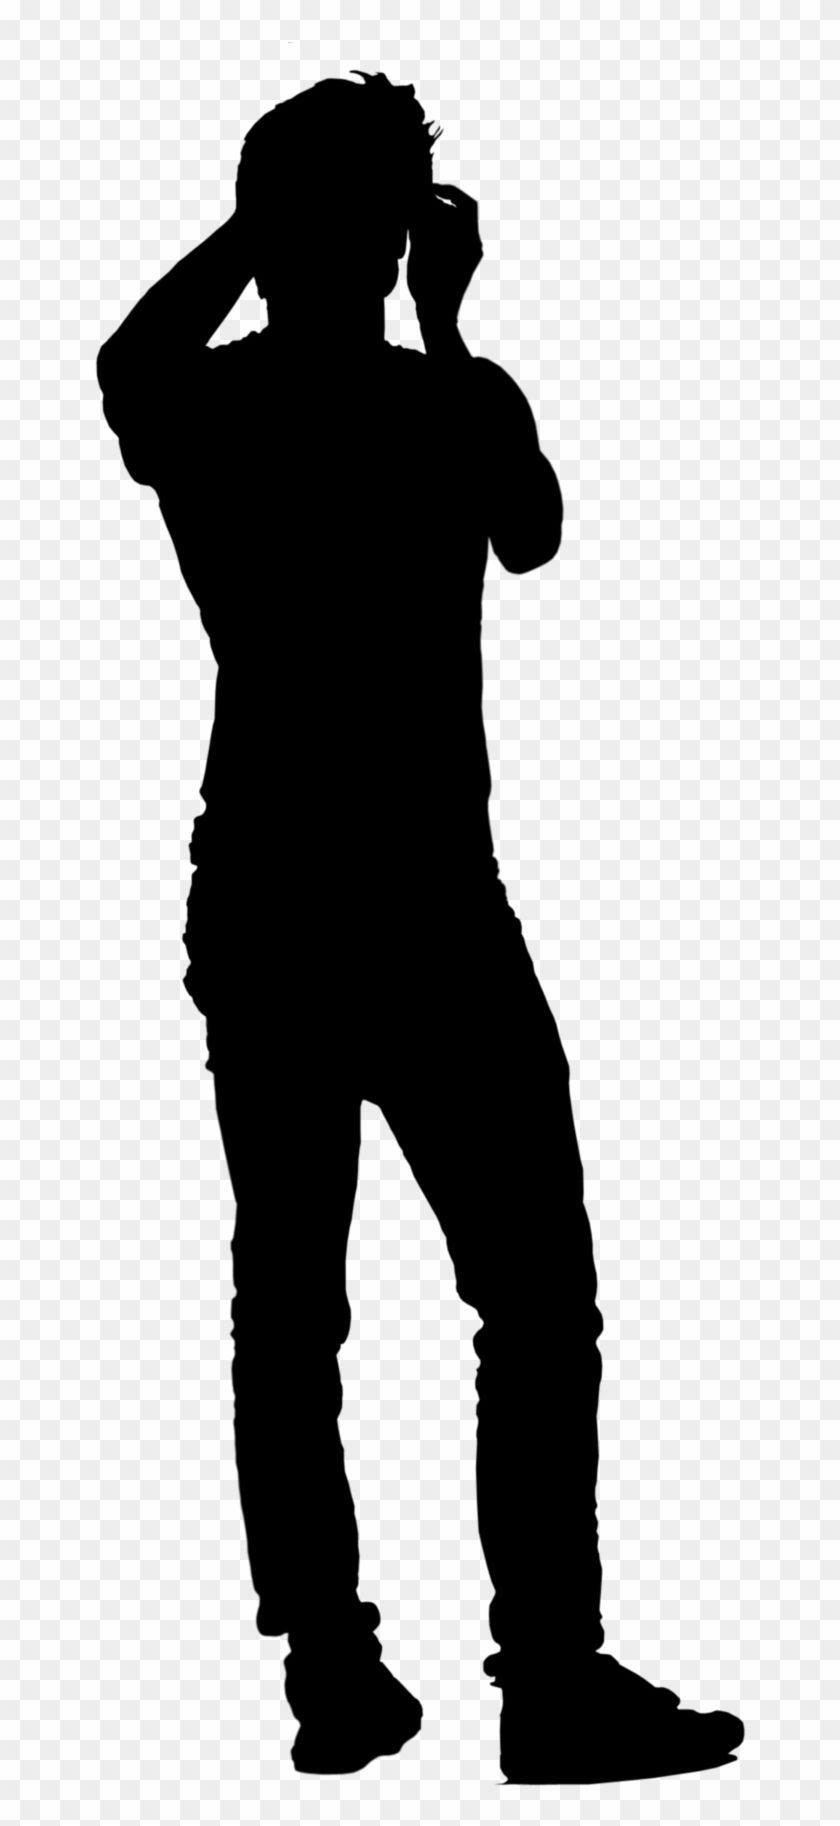 Silhouettes Nonscandinavia People Silhouette Png 245540 Black Silhouette Black Cat Silhouette Silhouette Png